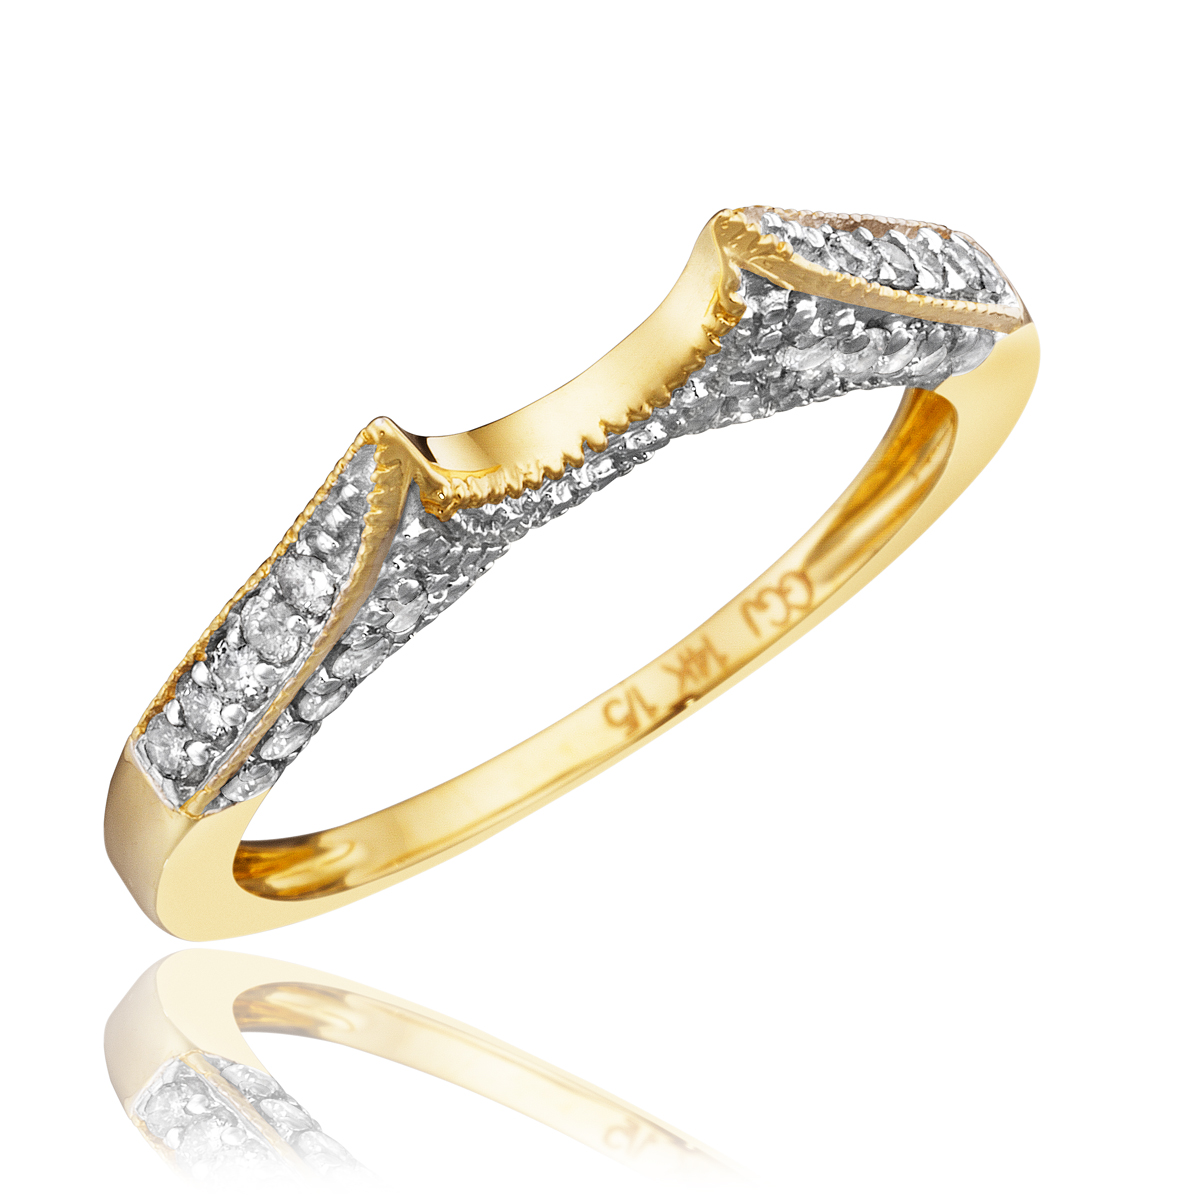 1 carat trio wedding ring set 14k yellow gold